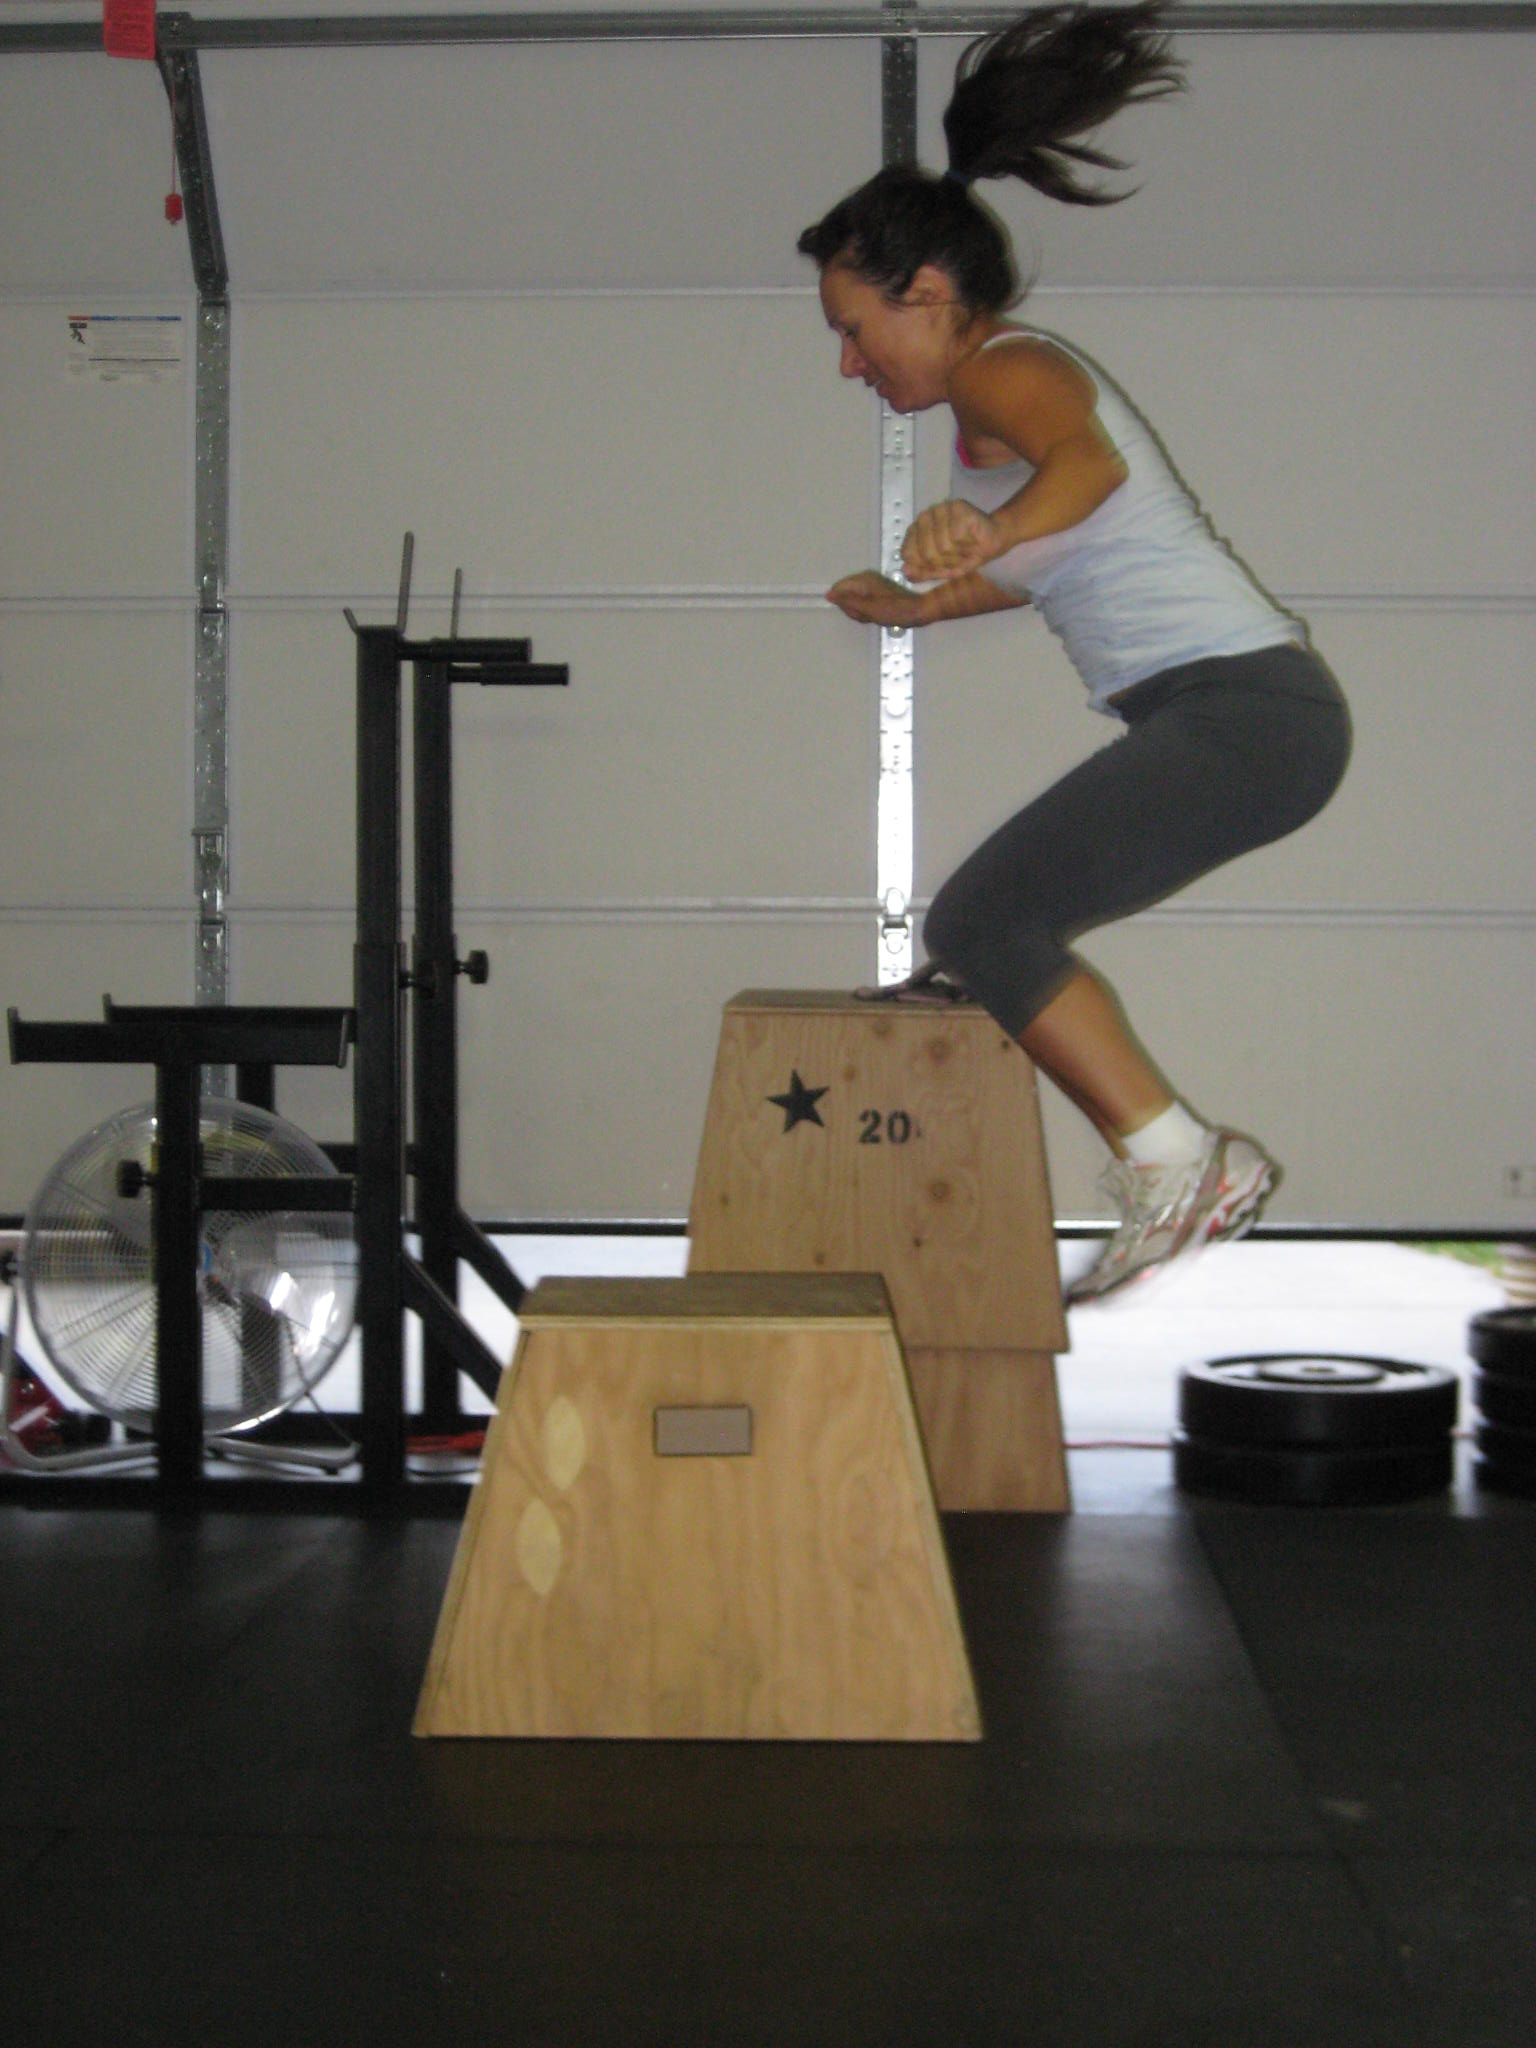 Tandy gettin some Box Jumps back in the Garage days.